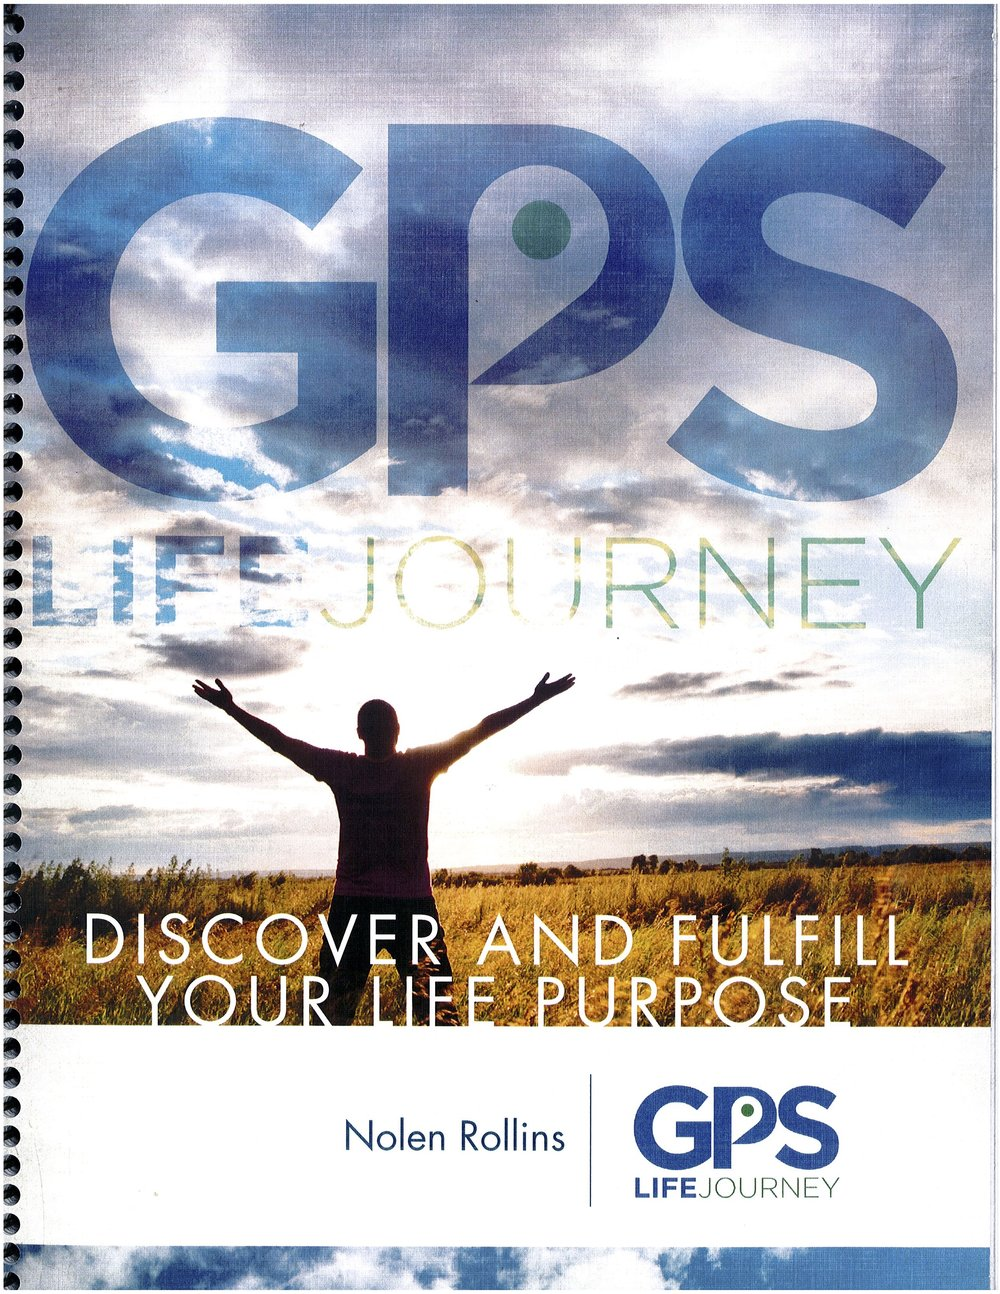 GPS Life Journey Workbook or Manual   Available from the church, the purchase price is $20.